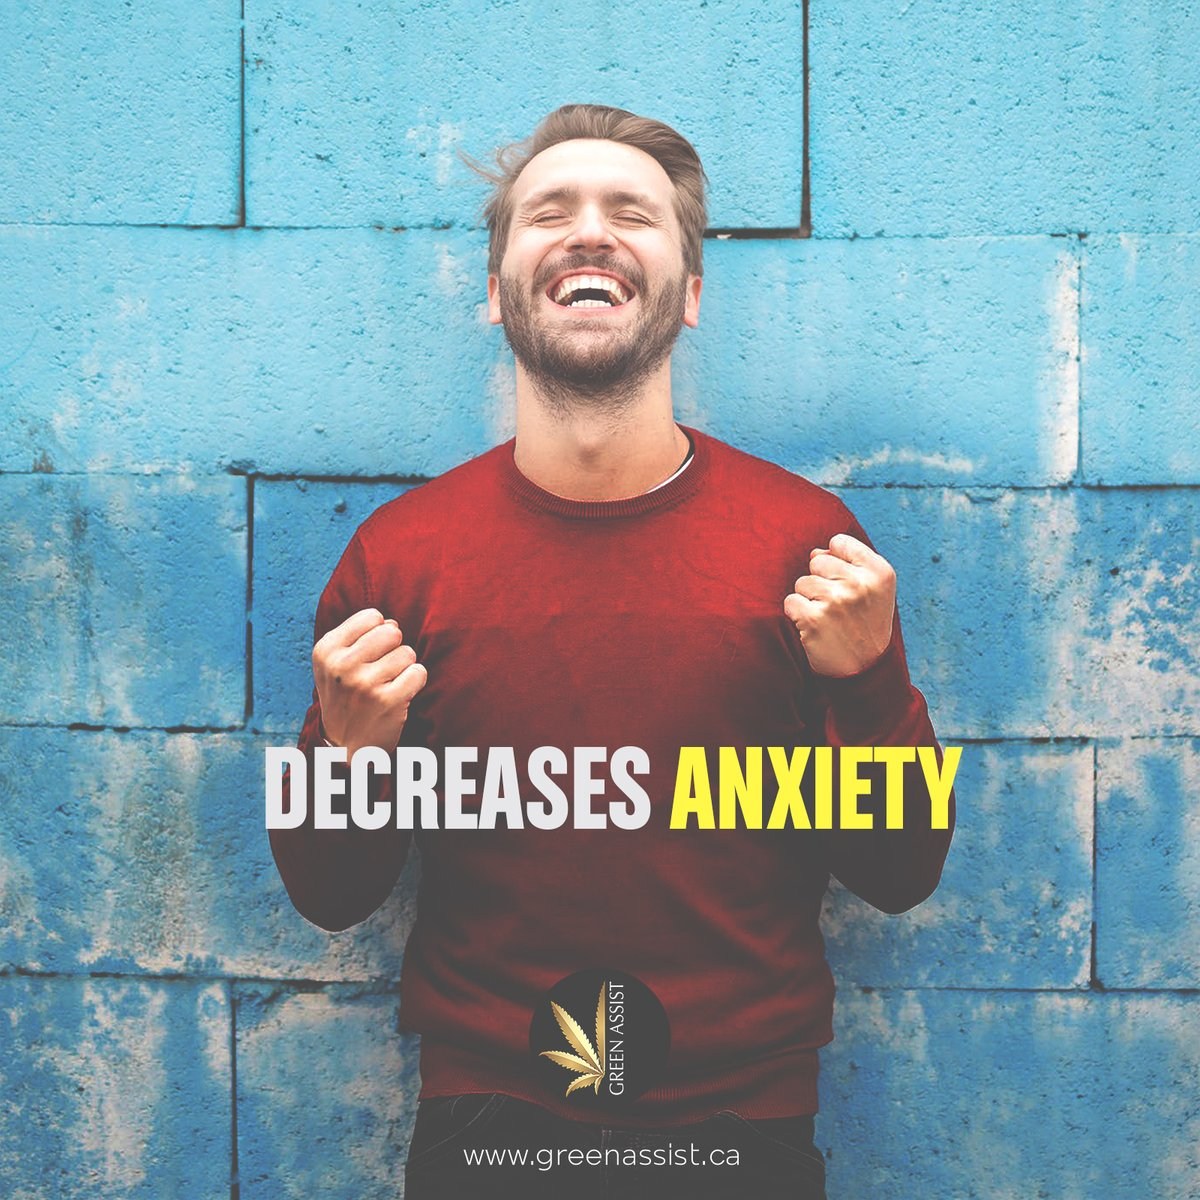 Many people report using CBD to cope with anxiety, especially those with social anxiety disorder.  via: https://zcu.io/yxT5  ORDER ONLINE TODAY at https://zcu.io/uhyD #GreenAssist #GreenAssistCanada #CBD #CBDHemp #Hemp #HempCBD #CBDOil #HempOil #ZeroTHC #CBDCommunitypic.twitter.com/tGwGvyIW9q